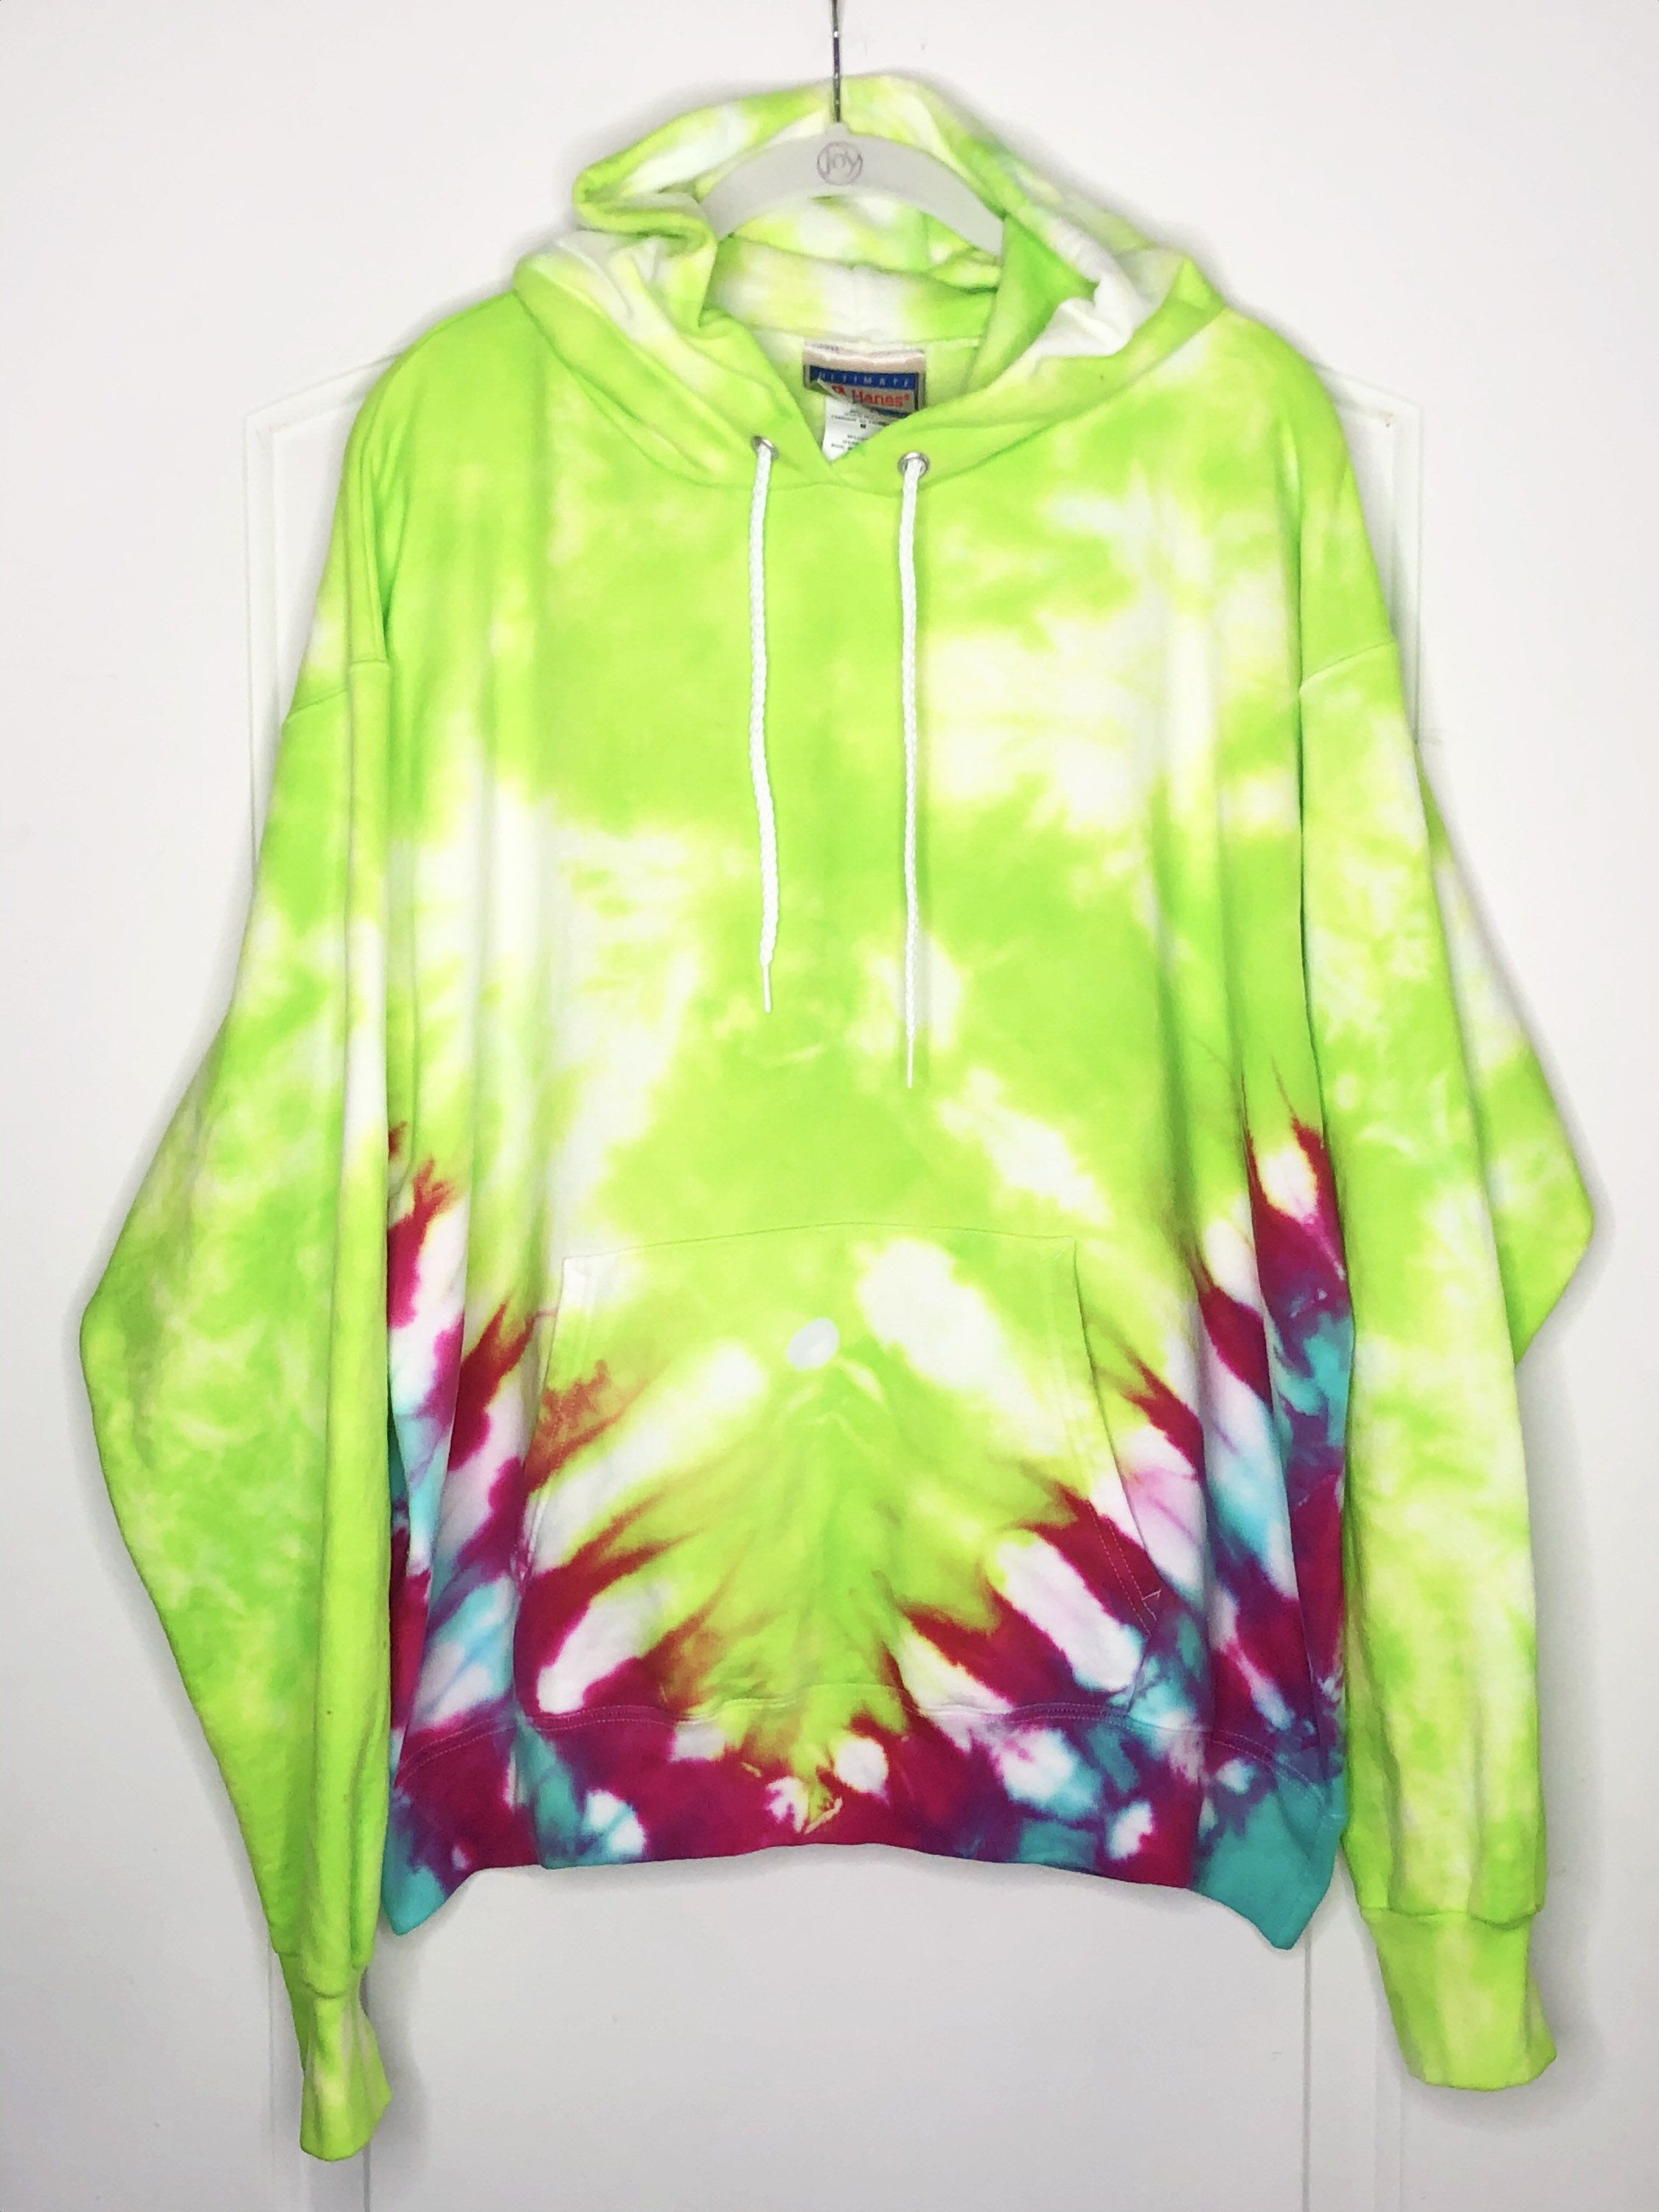 We Were Just Itching To Make Something Lime For You So We Did Do You Love It Https Etsy Me 2qm0c3o Tiedy Tie Dye Jackets Tie Dye Outfits Tie Dye Hoodie [ 3000 x 2250 Pixel ]